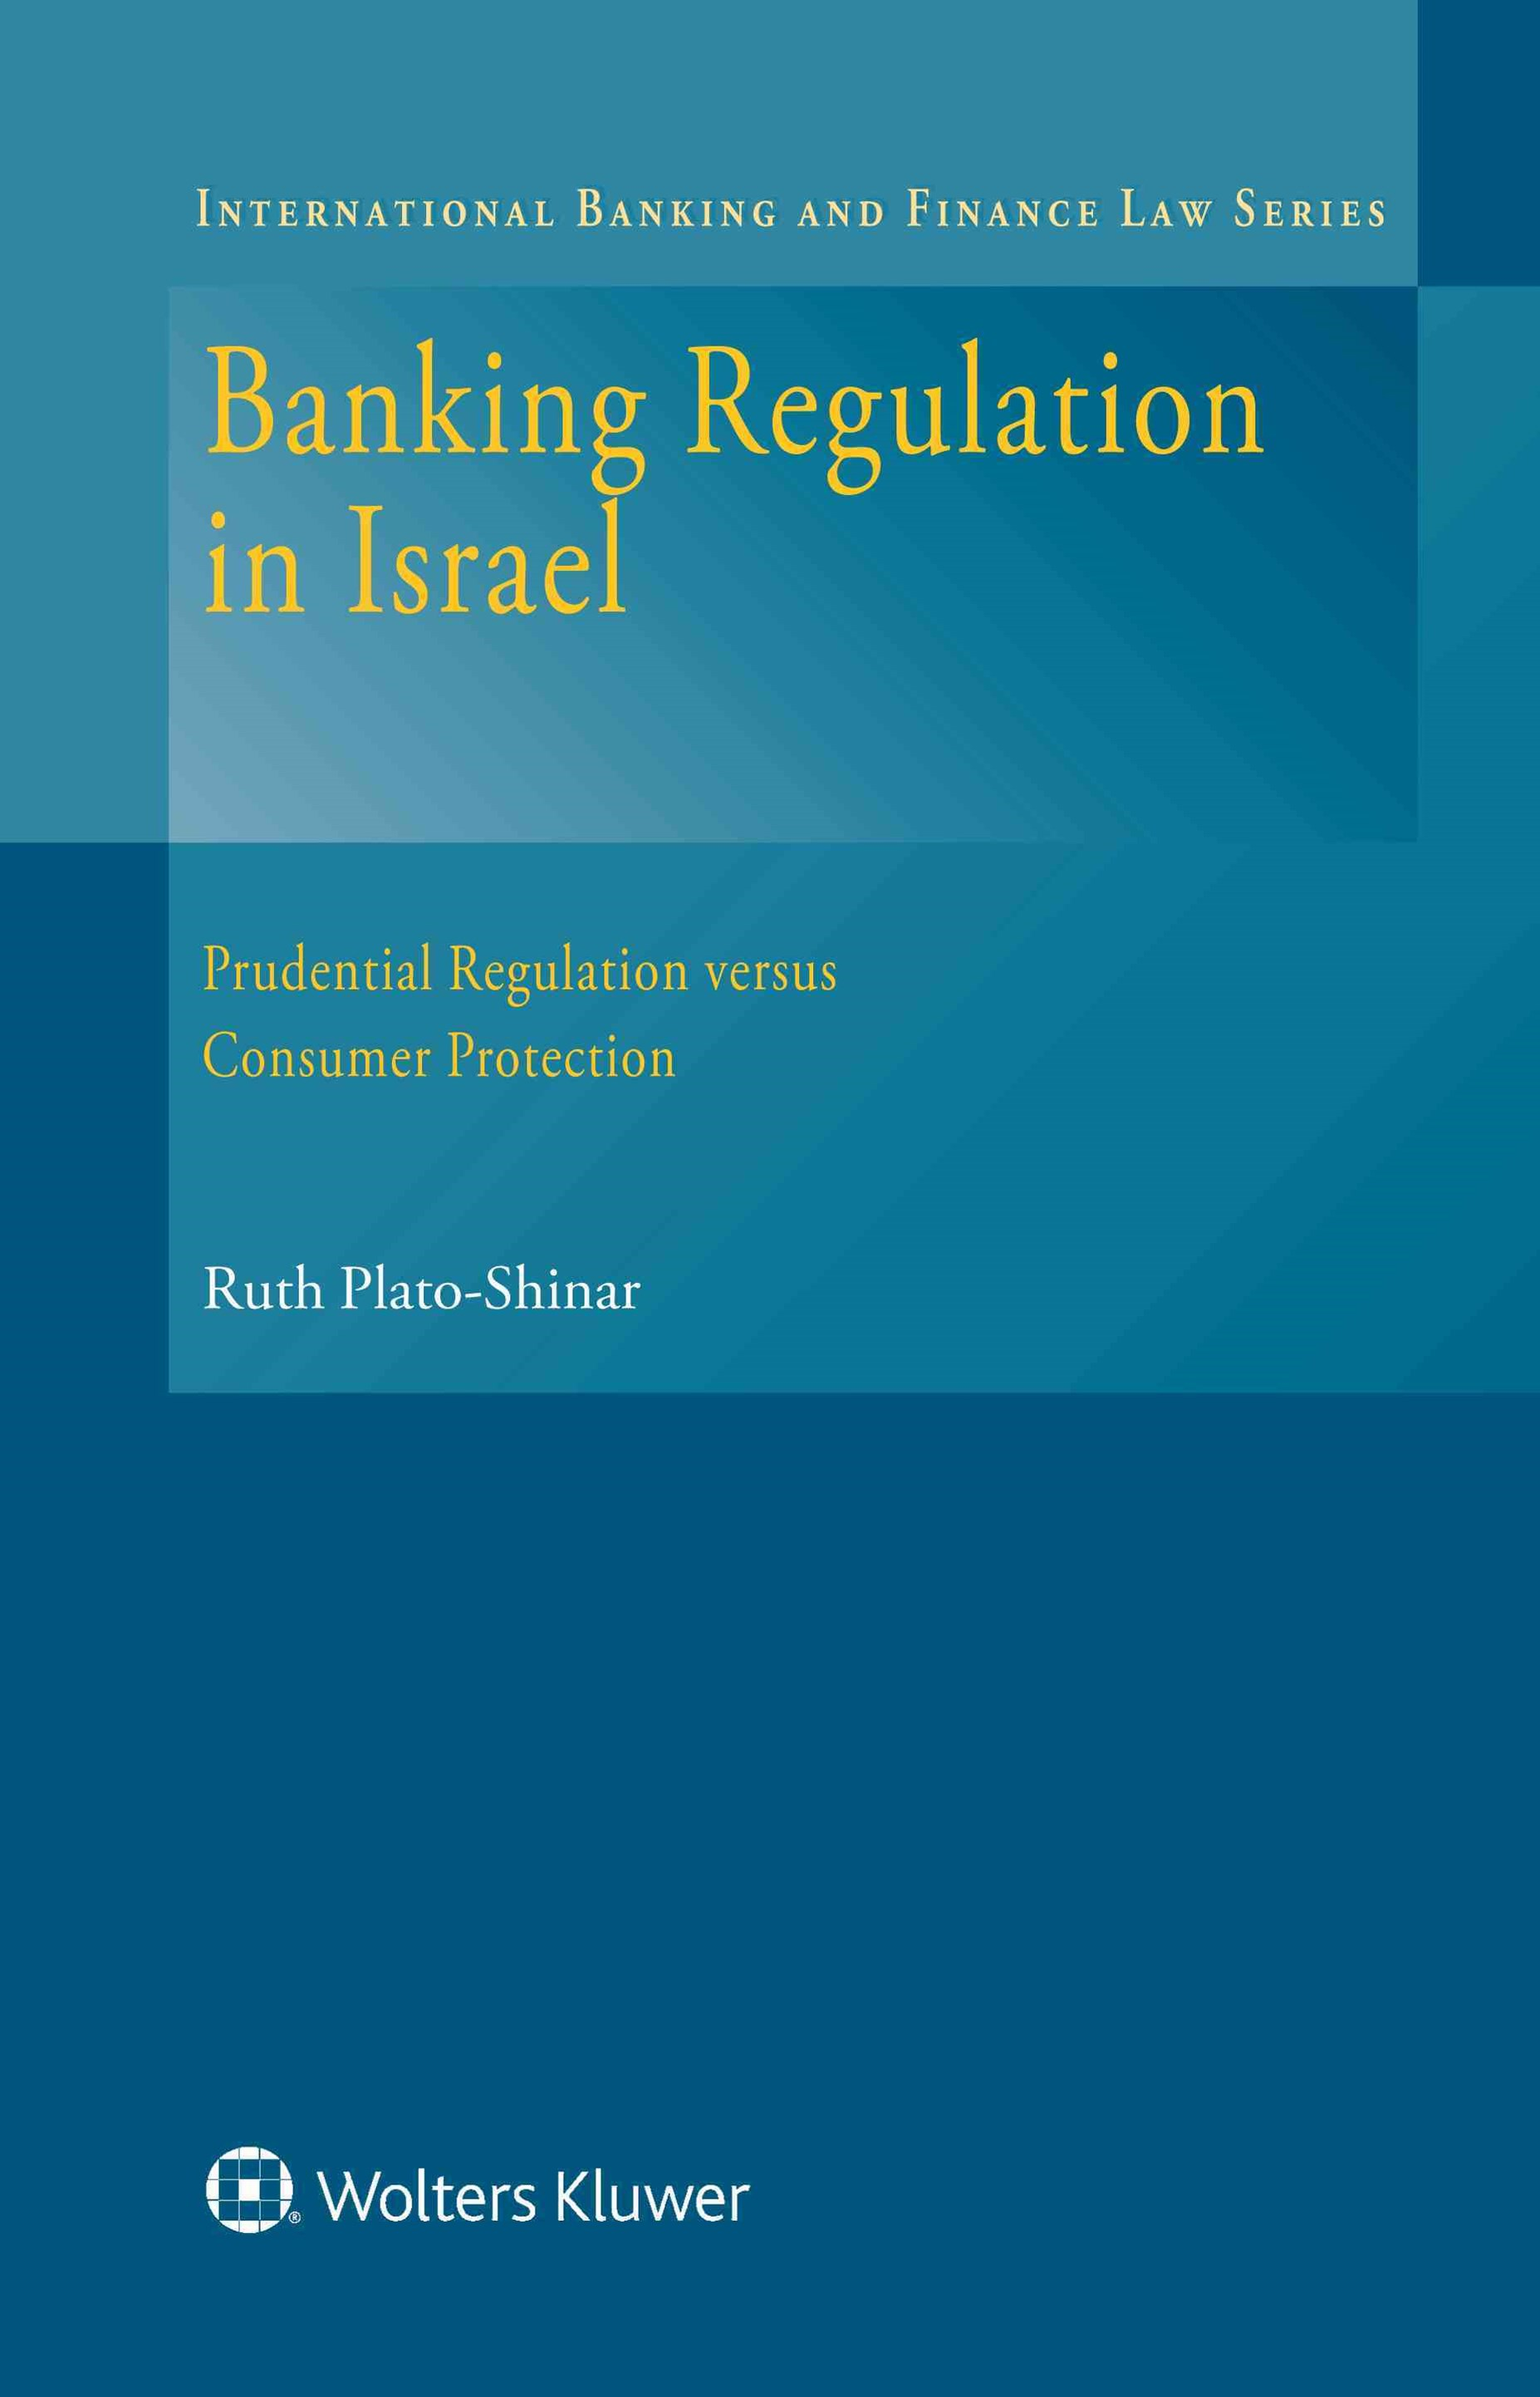 Banking Regulation in Israel